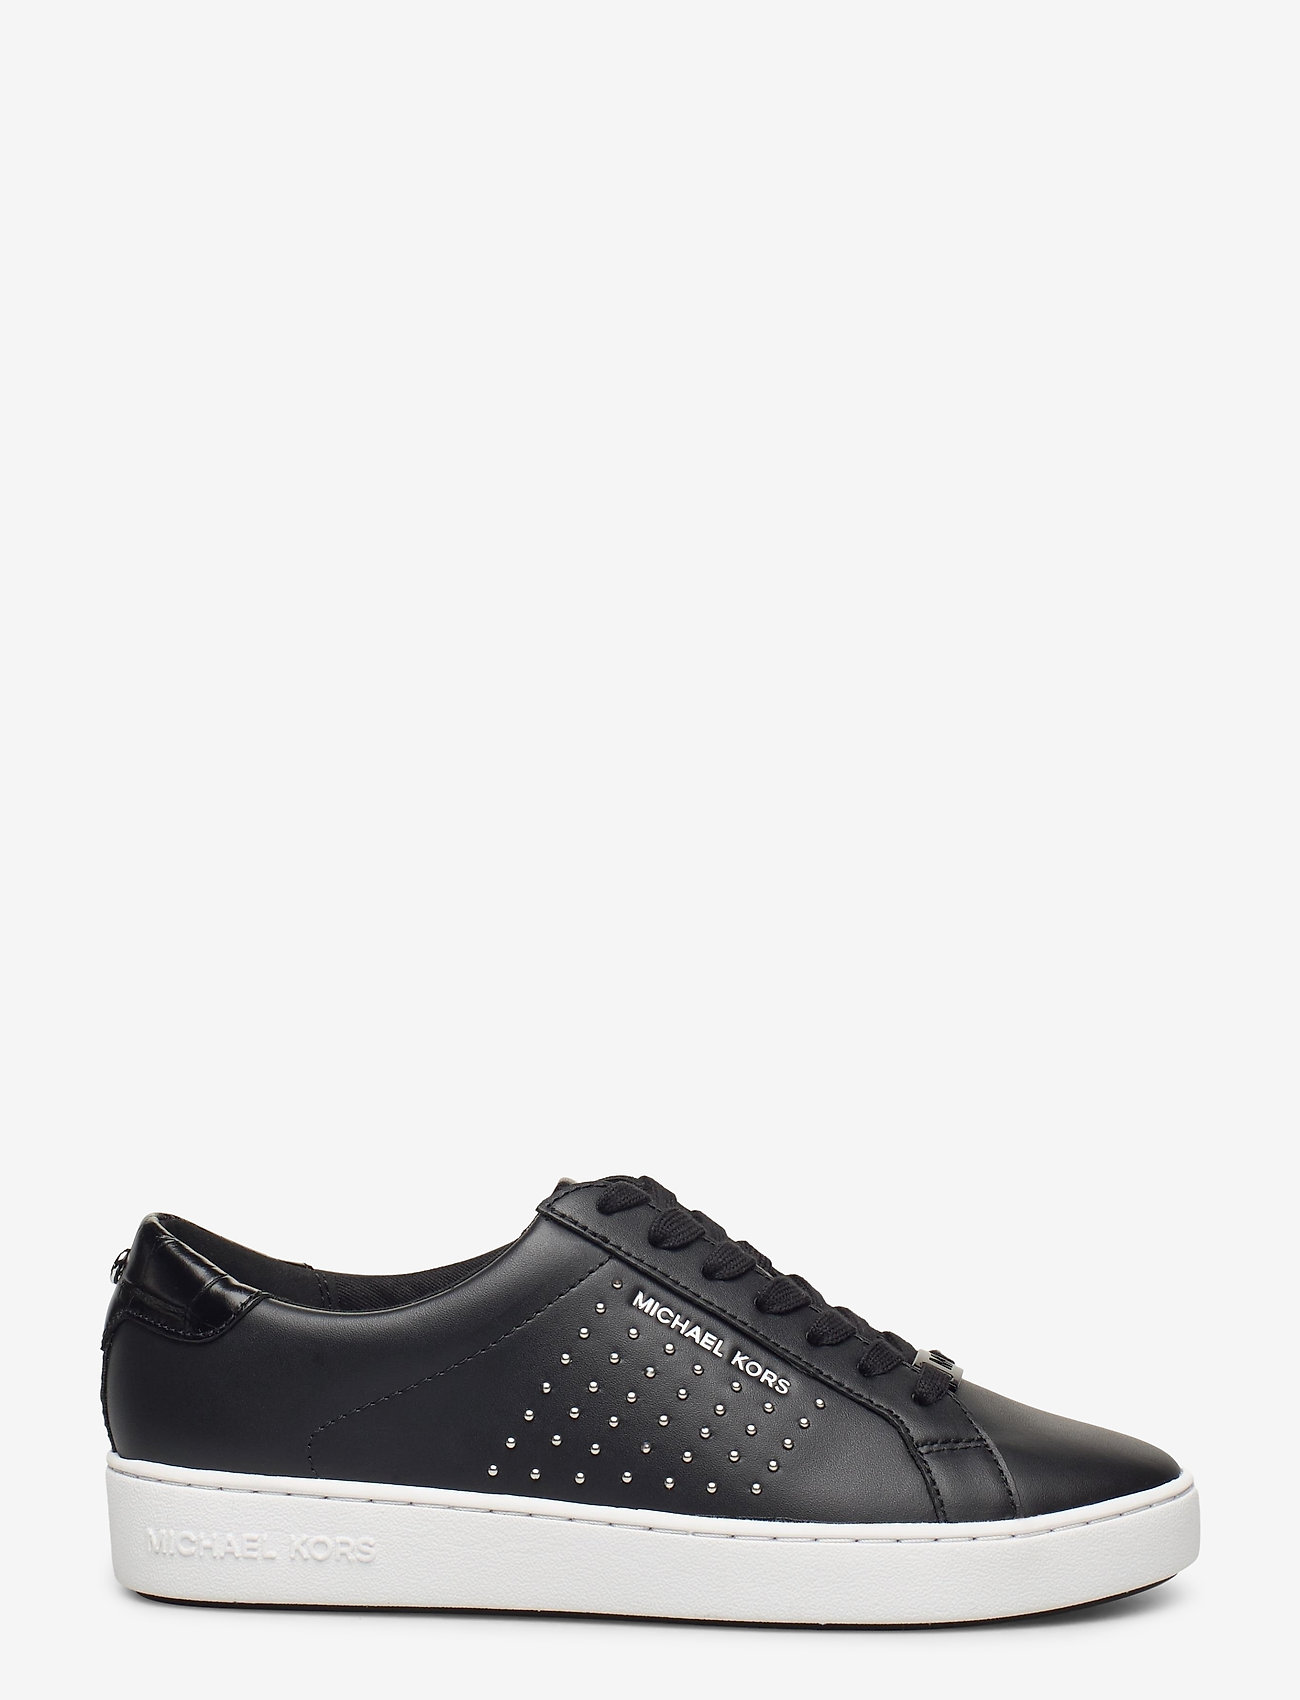 Michael Kors Shoes - IRVING LACE UP - lage sneakers - black - 1